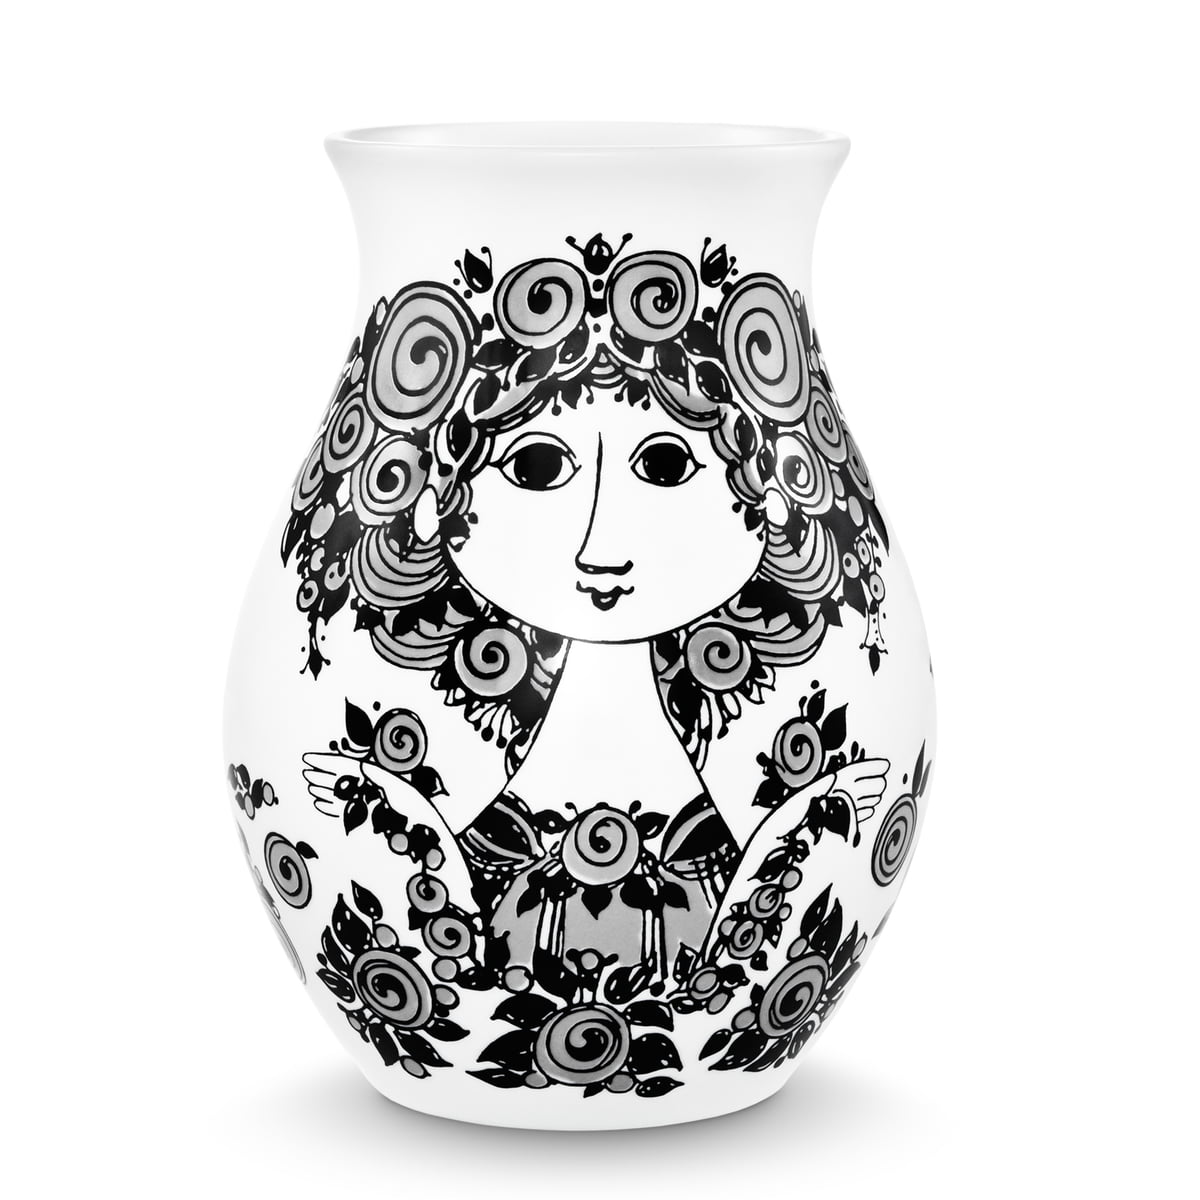 porcelain vase rosalinde by bj rn wiinblad in shop. Black Bedroom Furniture Sets. Home Design Ideas